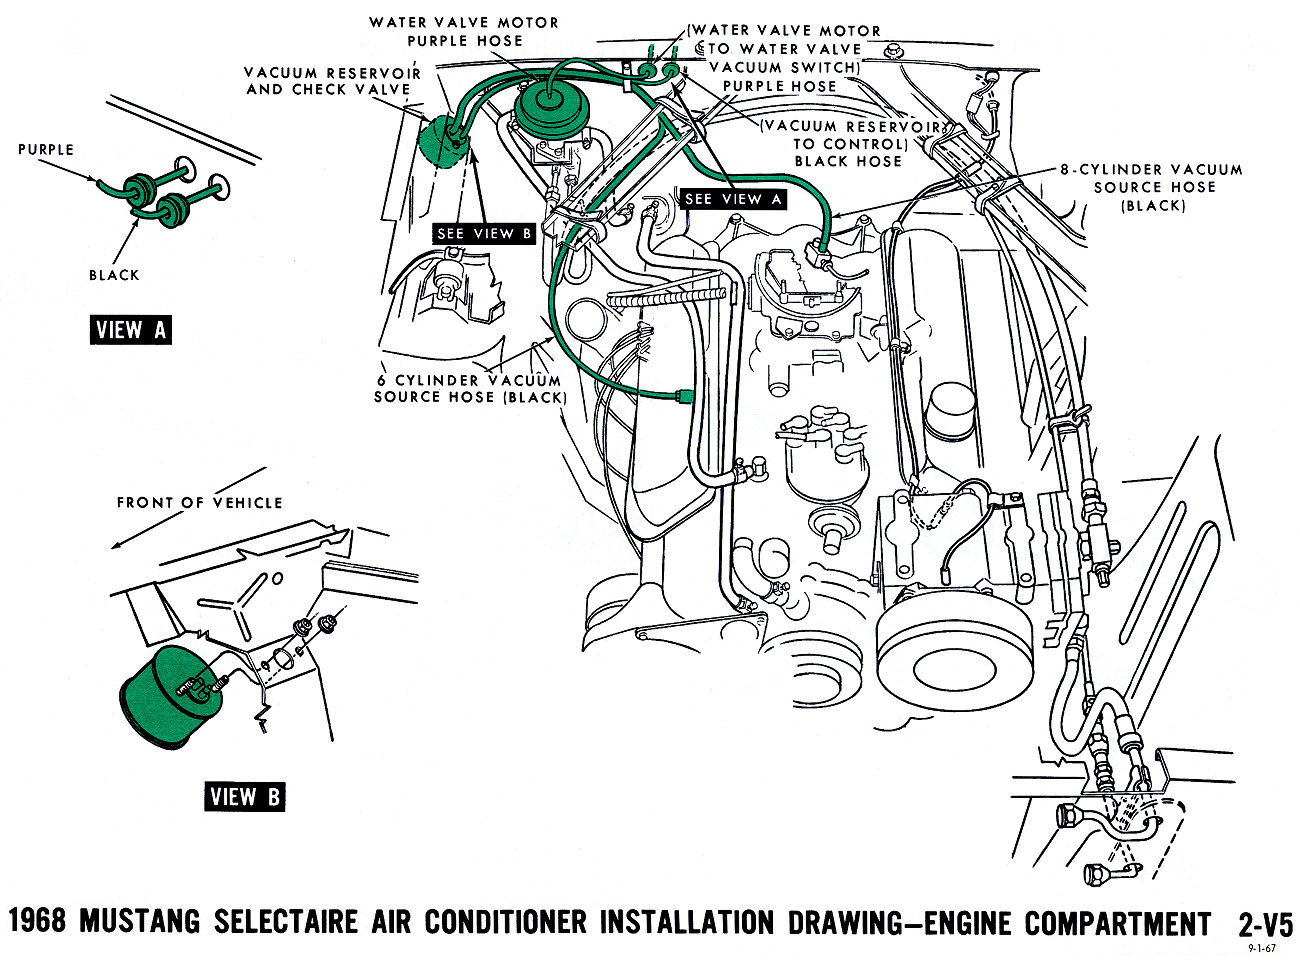 1968 Mustang Vacuum Diagrams on 69 camaro wiring diagram